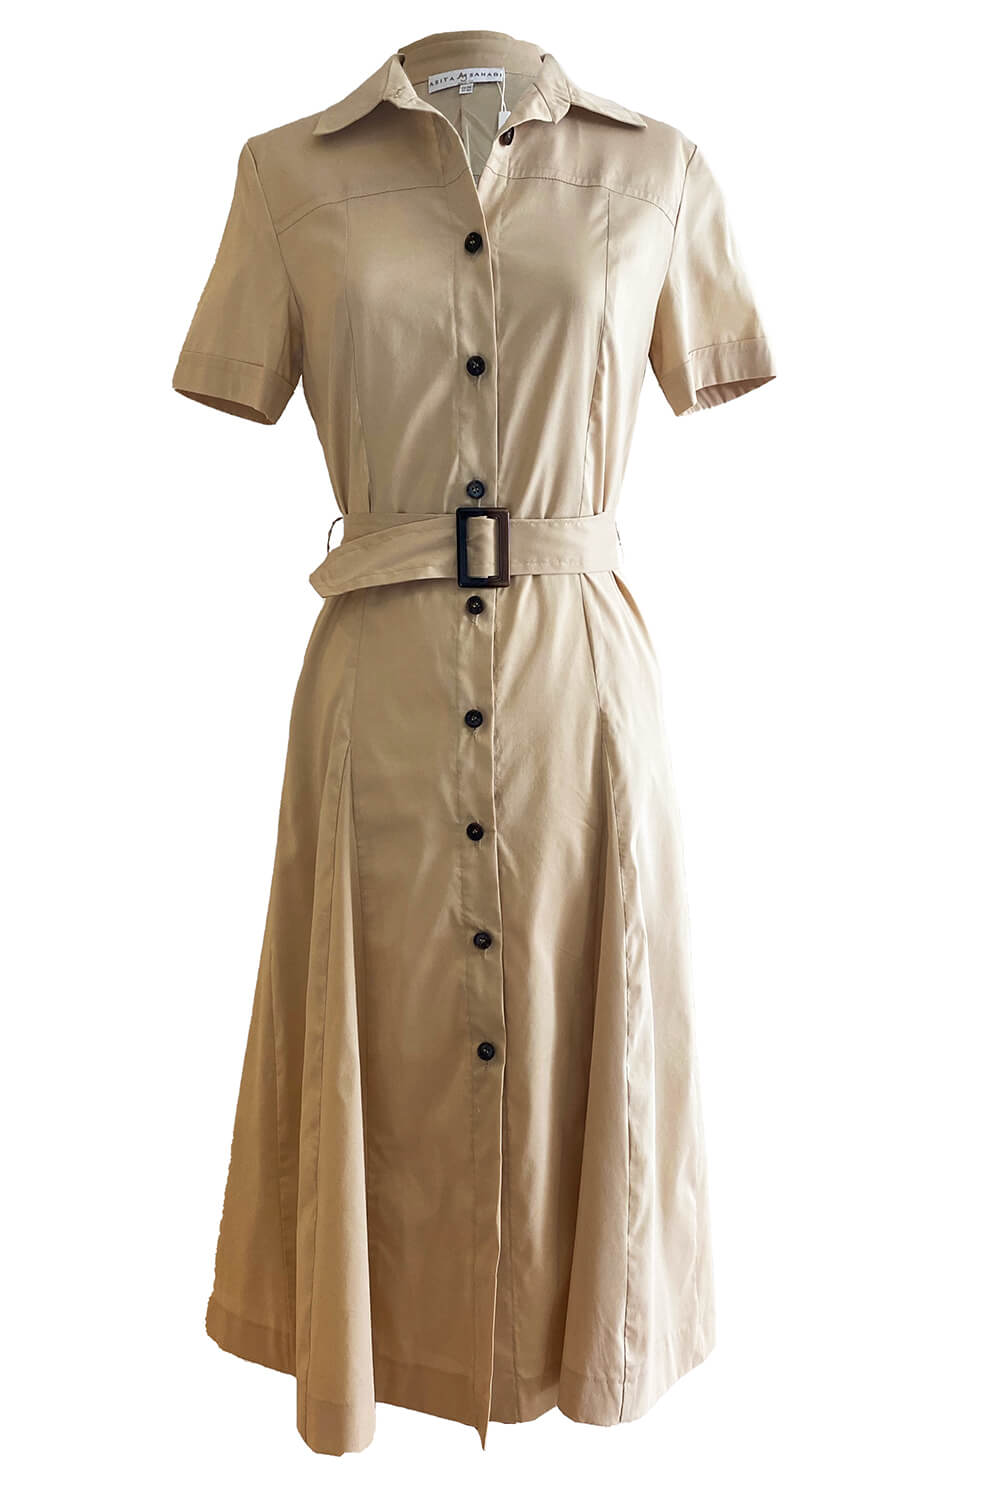 shirt dress NAMIBIA in beige cotton and A-line